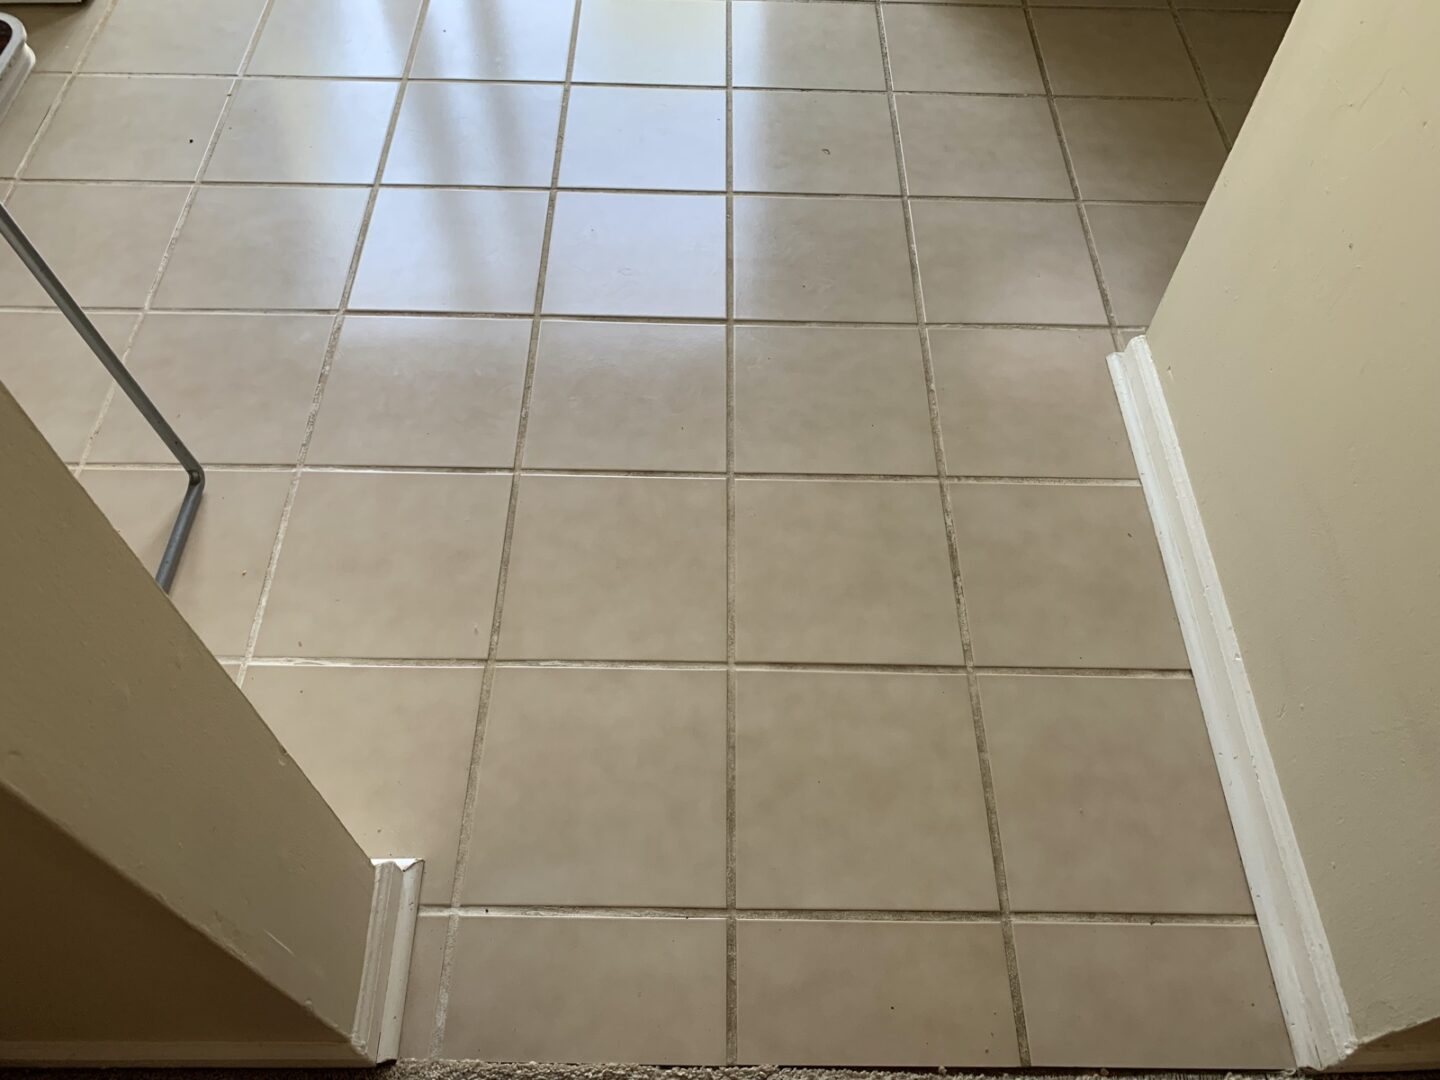 Before tile cleaning